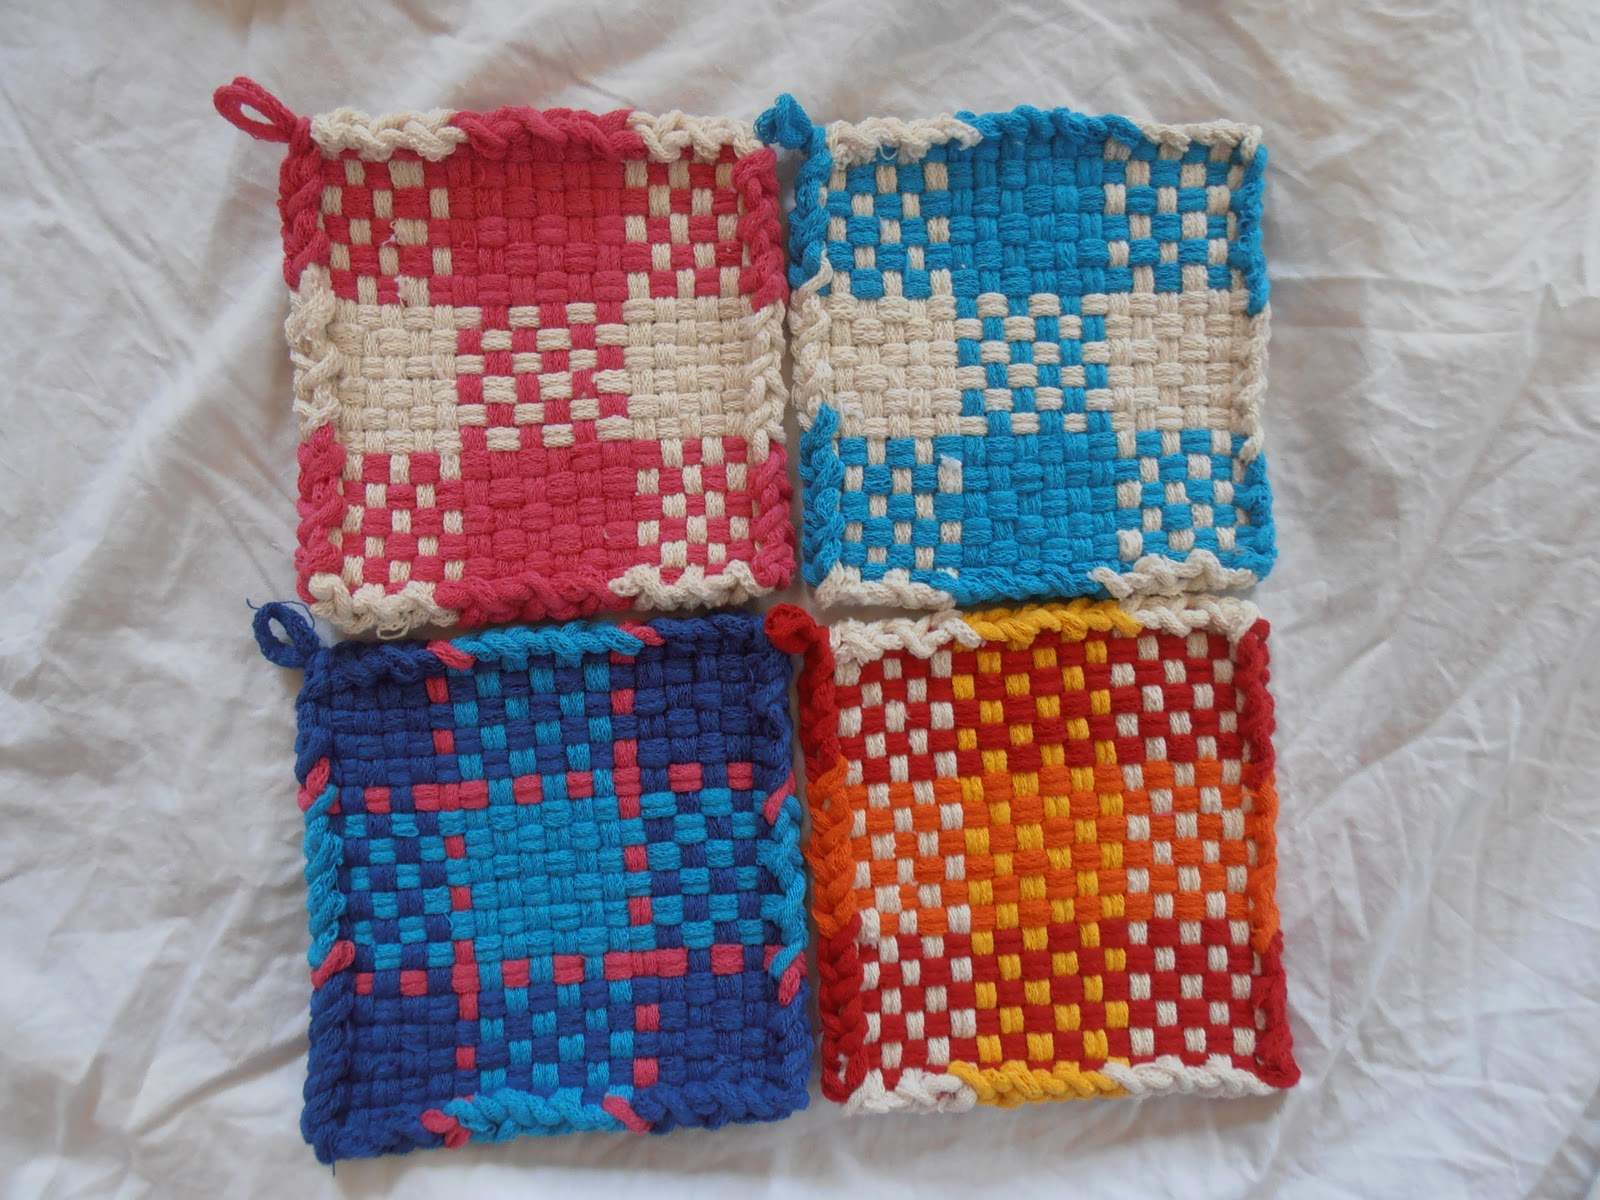 Knitting Pot Holder Patterns Free : potholder loom patterns - Google Search Knitting and other crafty t?